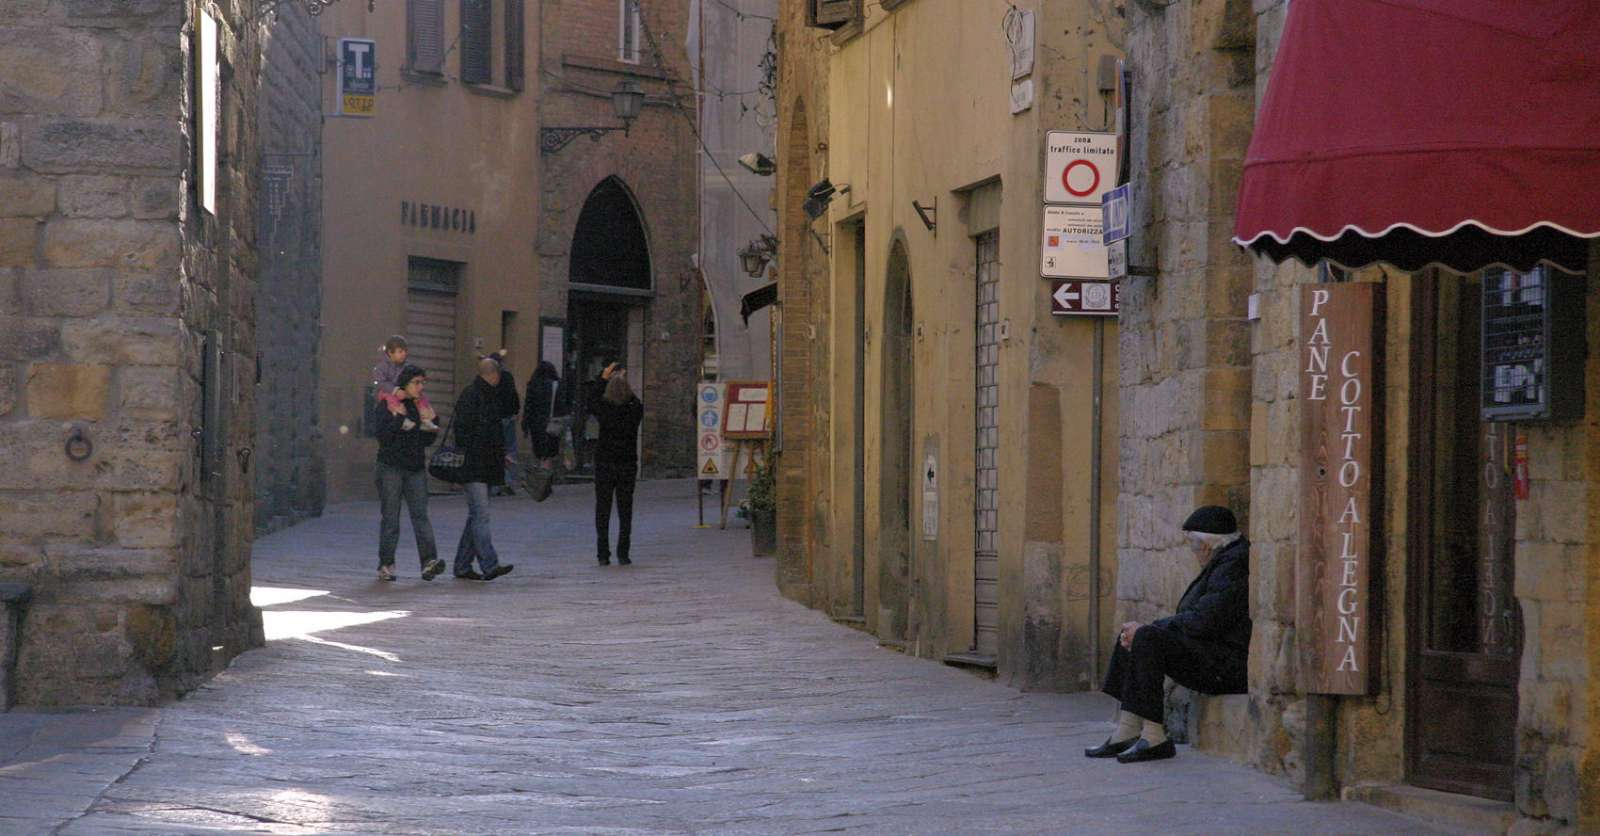 Via dei Sarti in the historic centre of Volterra